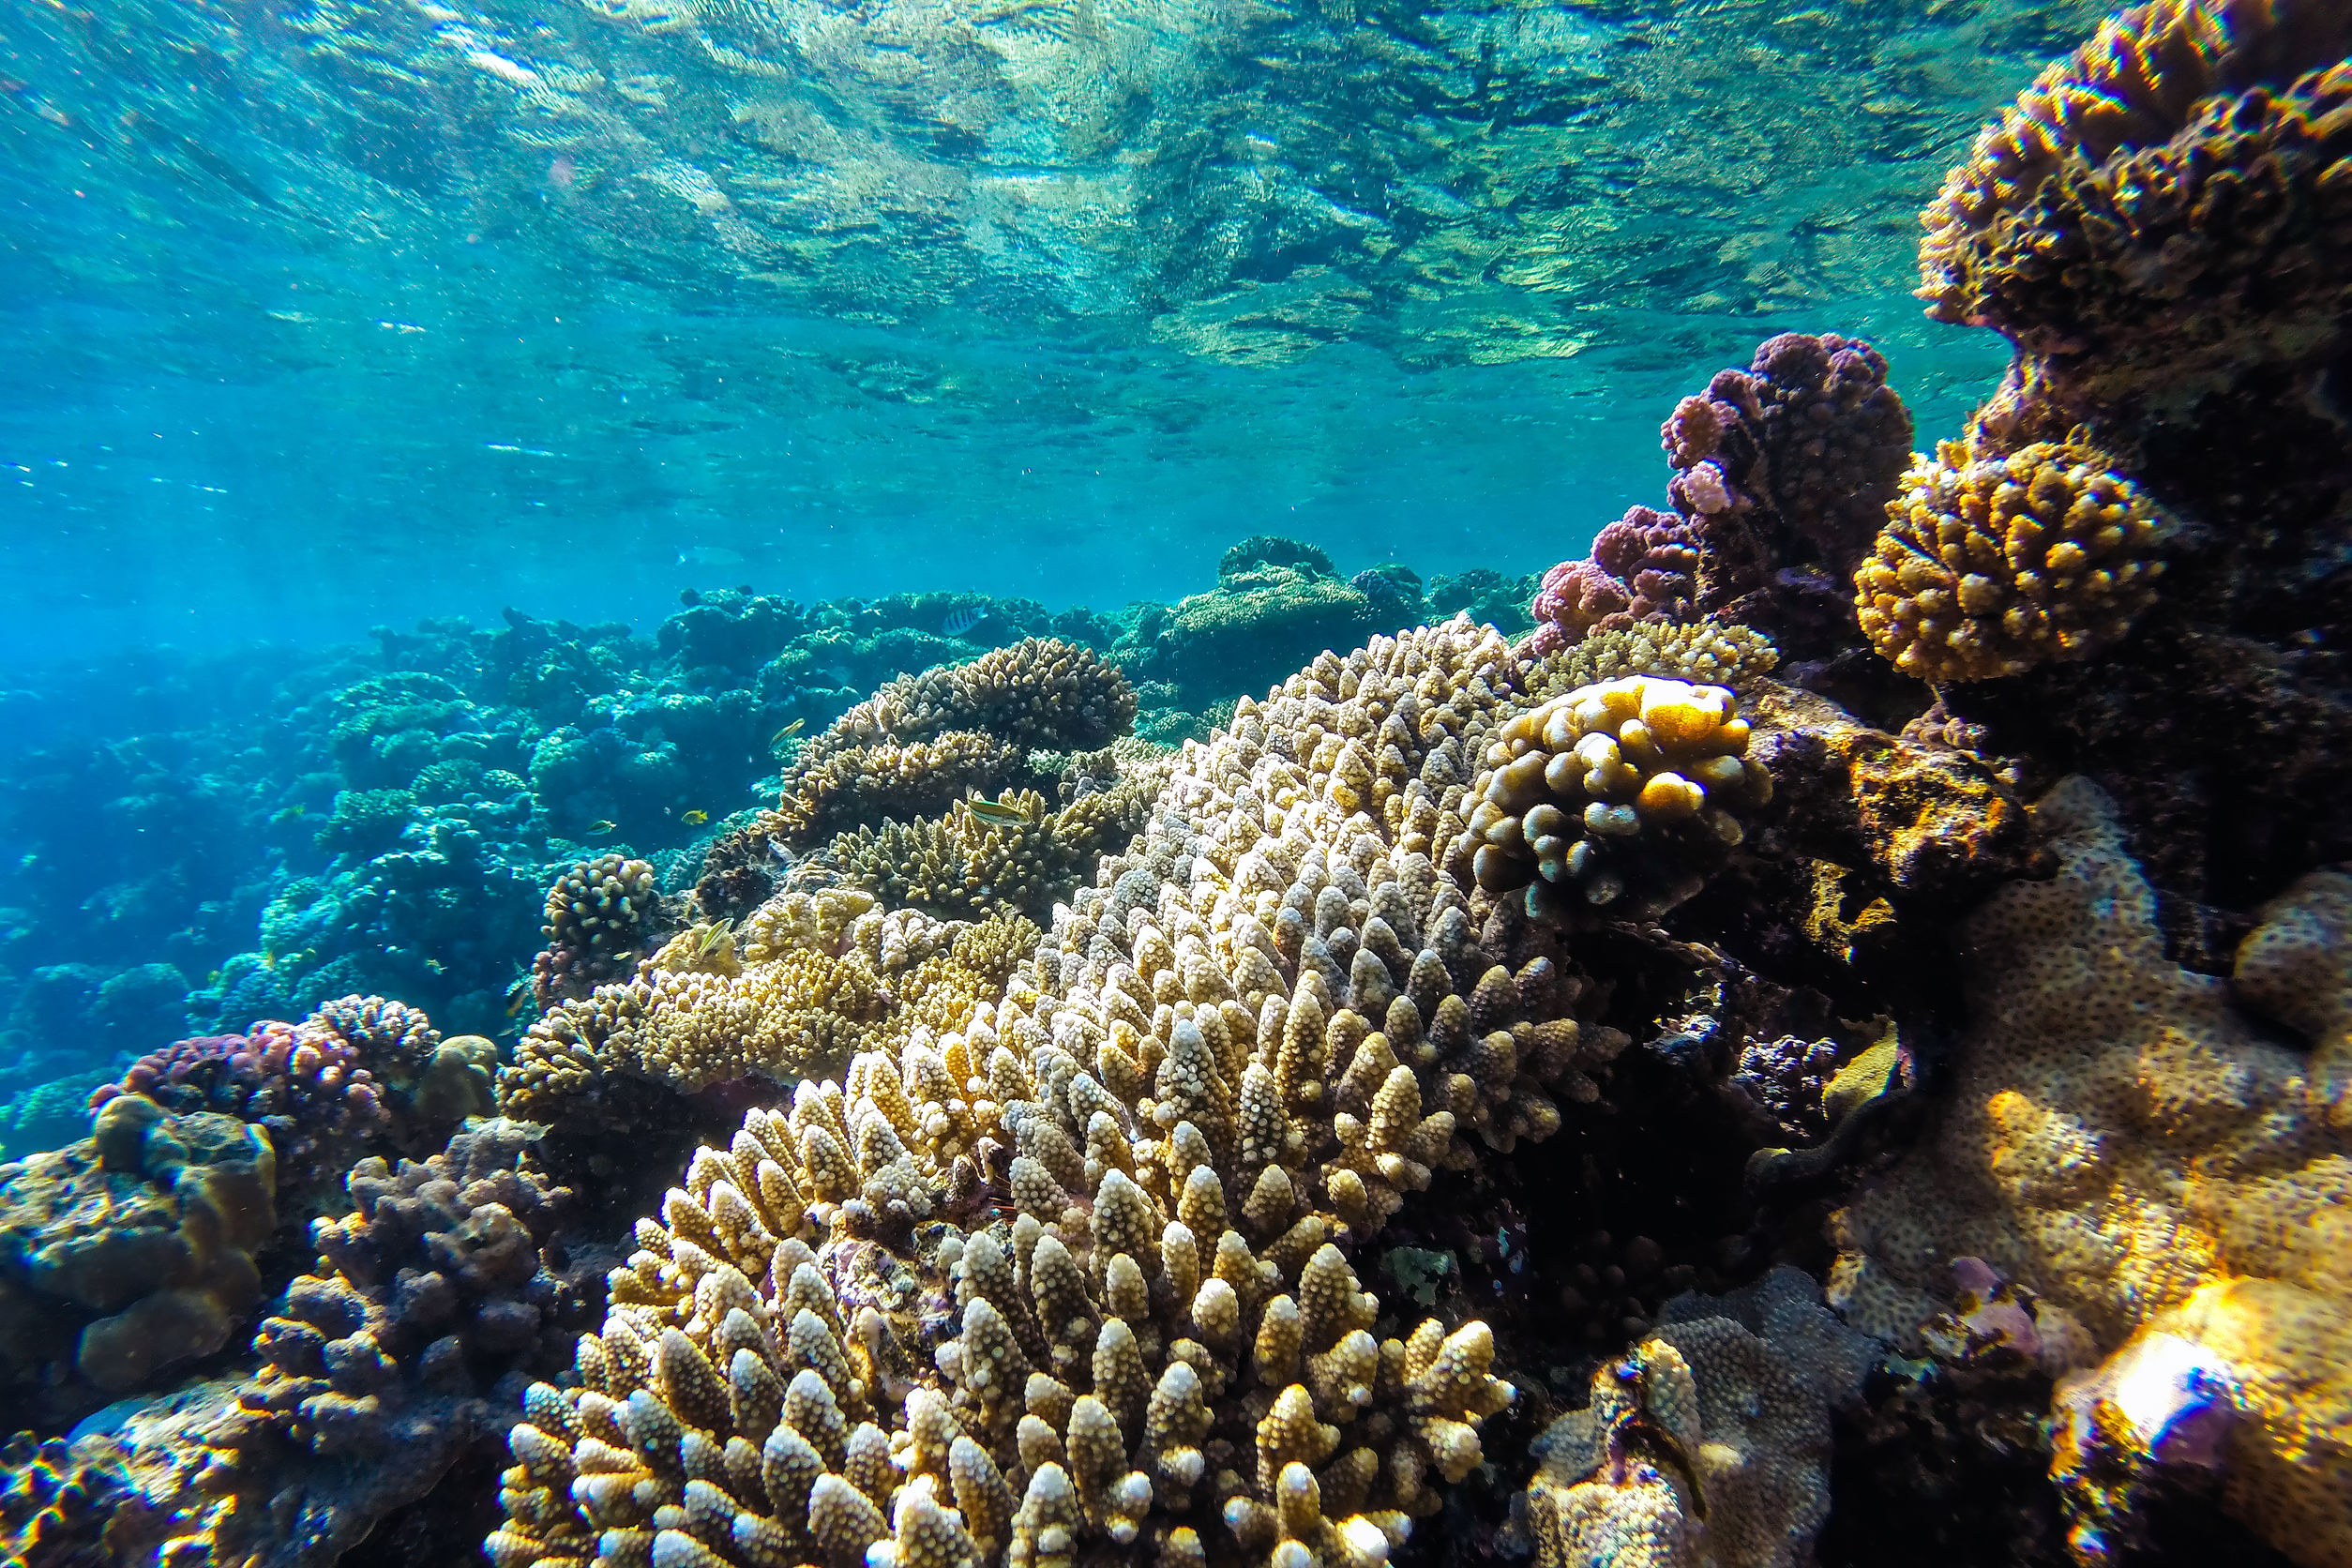 43548509 - red sea coral reef with hard corals, fishes and sunny sky shining through clean water - underwater photo